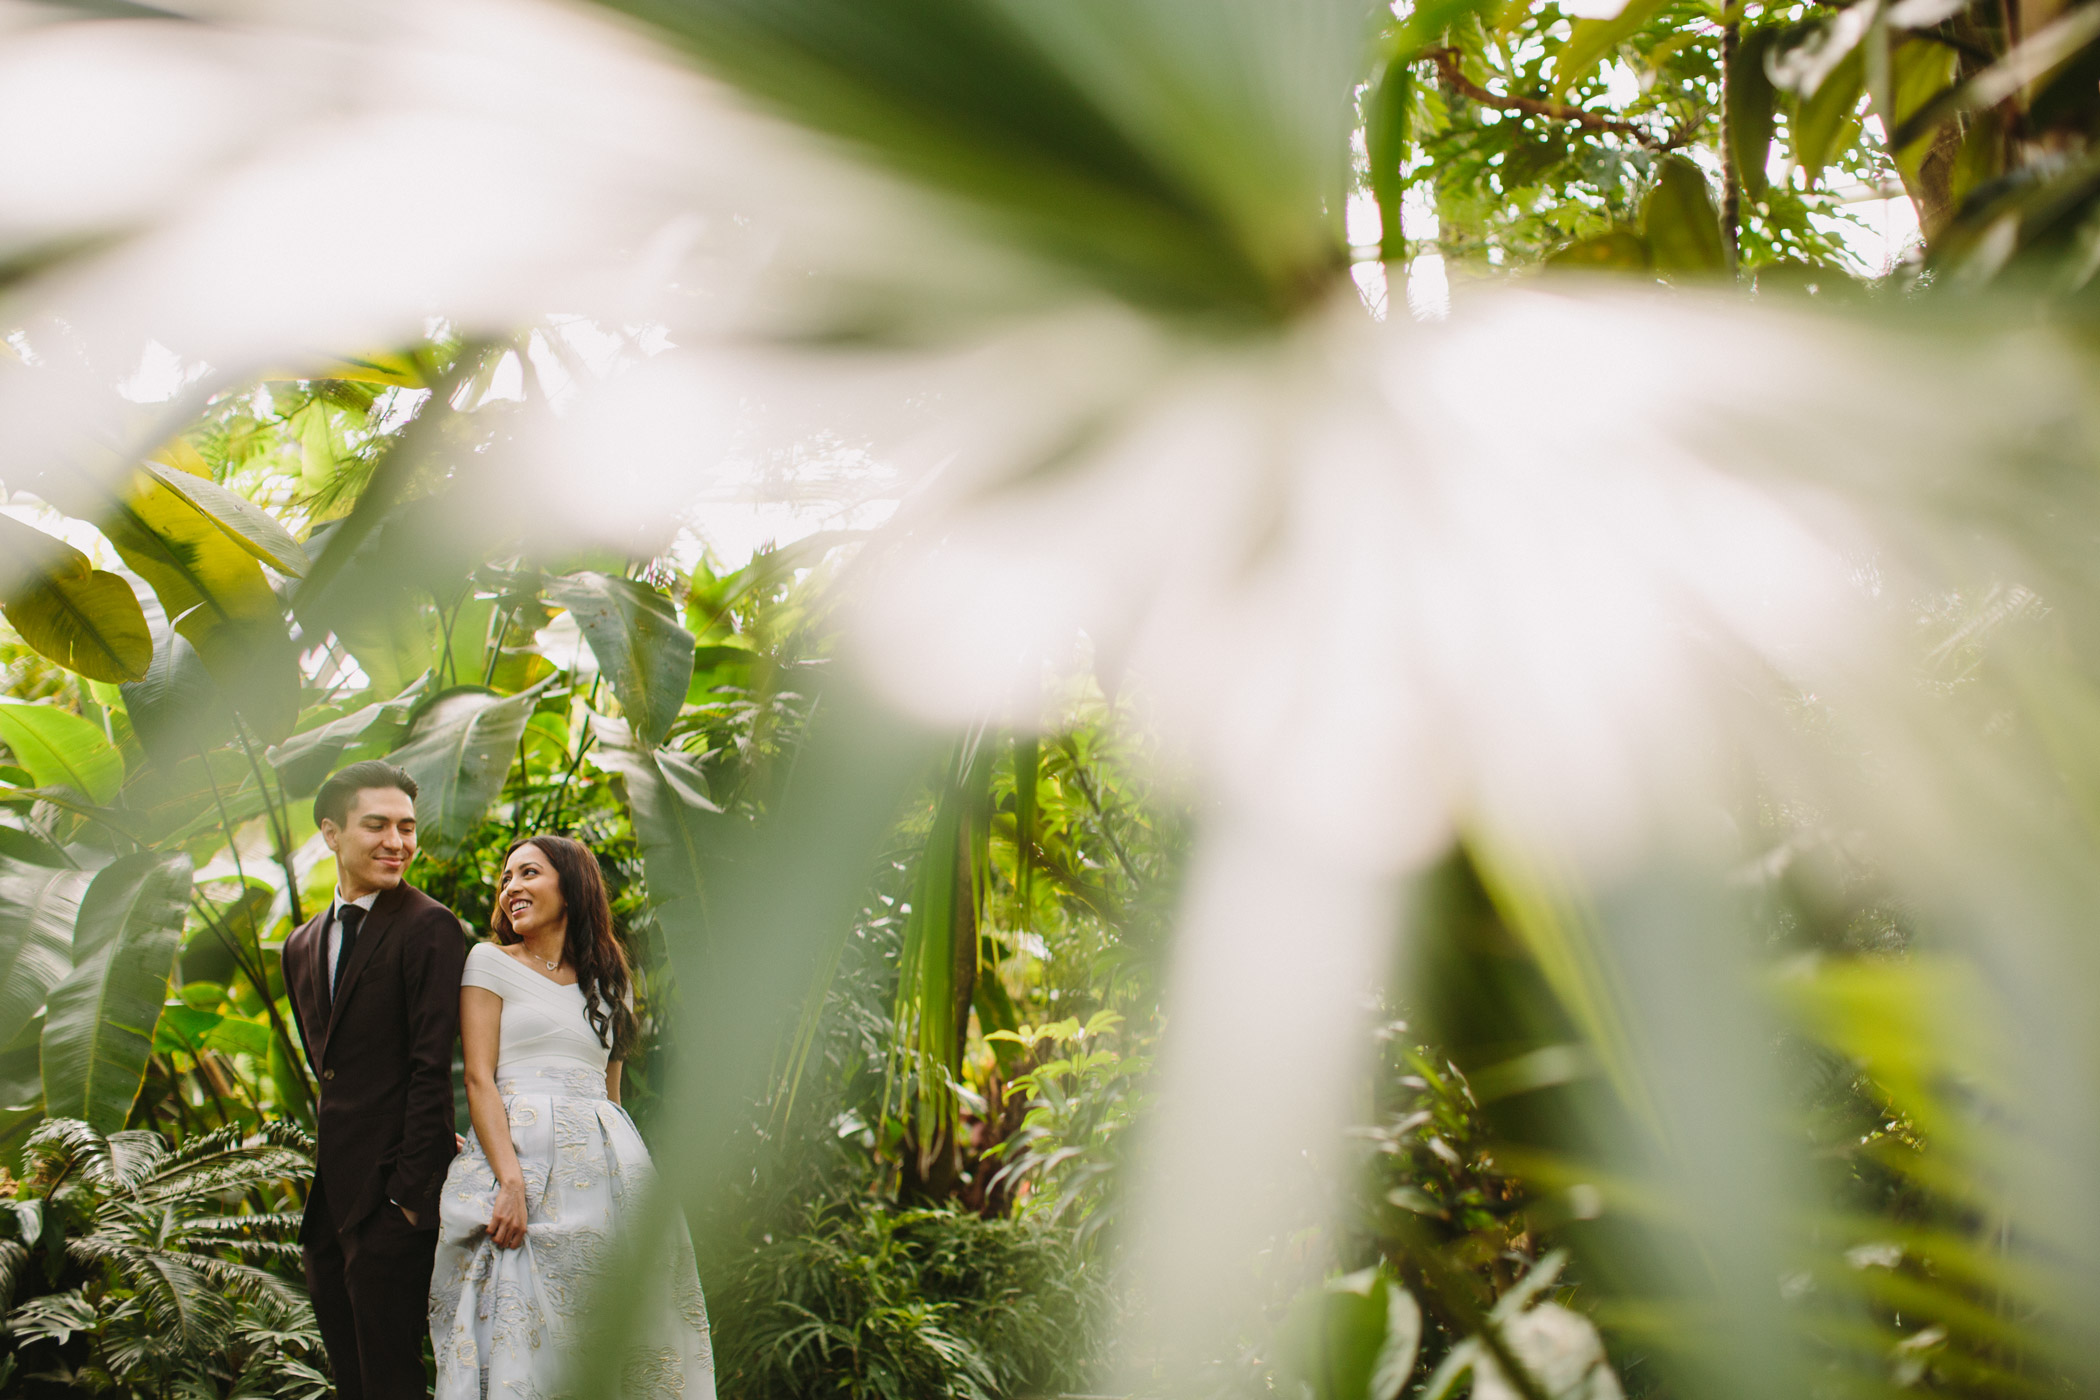 Wedding Portrait at Bloedel Conservatory